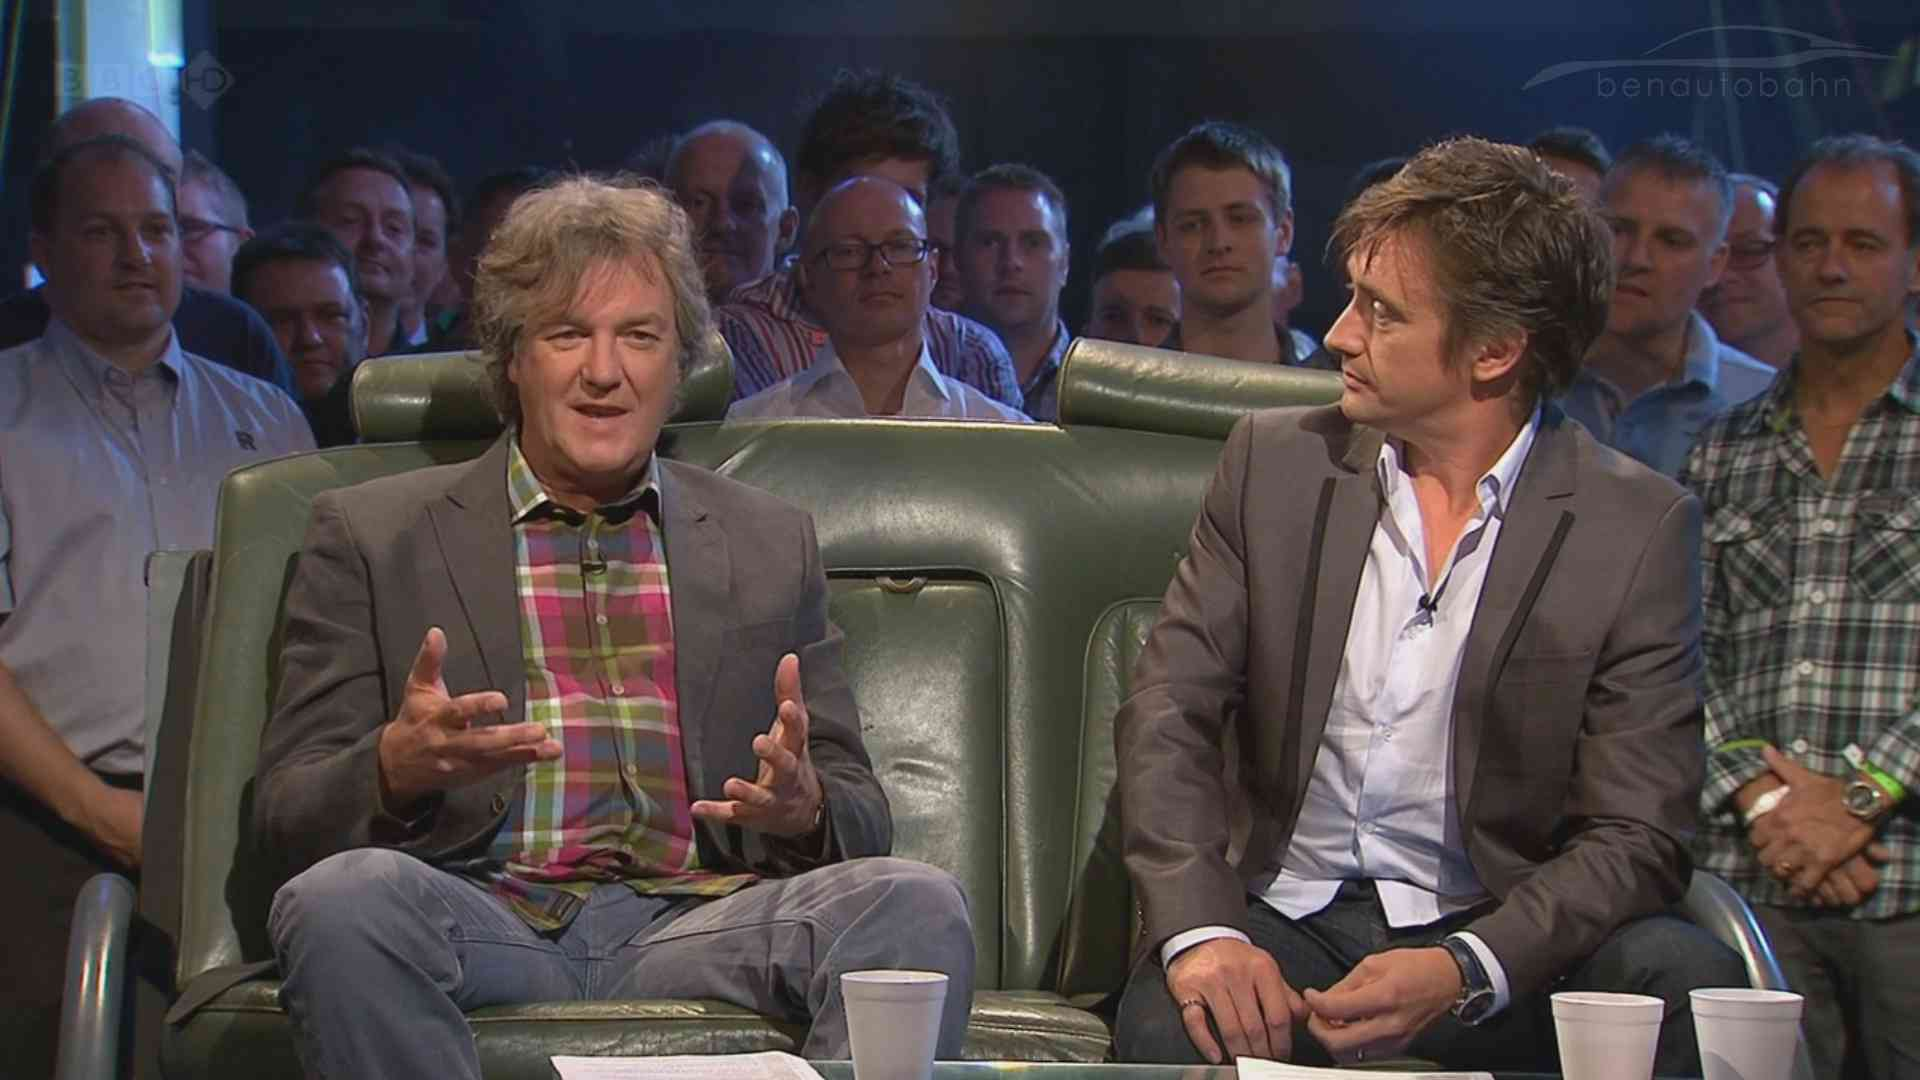 top gear season 17 episode 4 review benautobahn. Black Bedroom Furniture Sets. Home Design Ideas